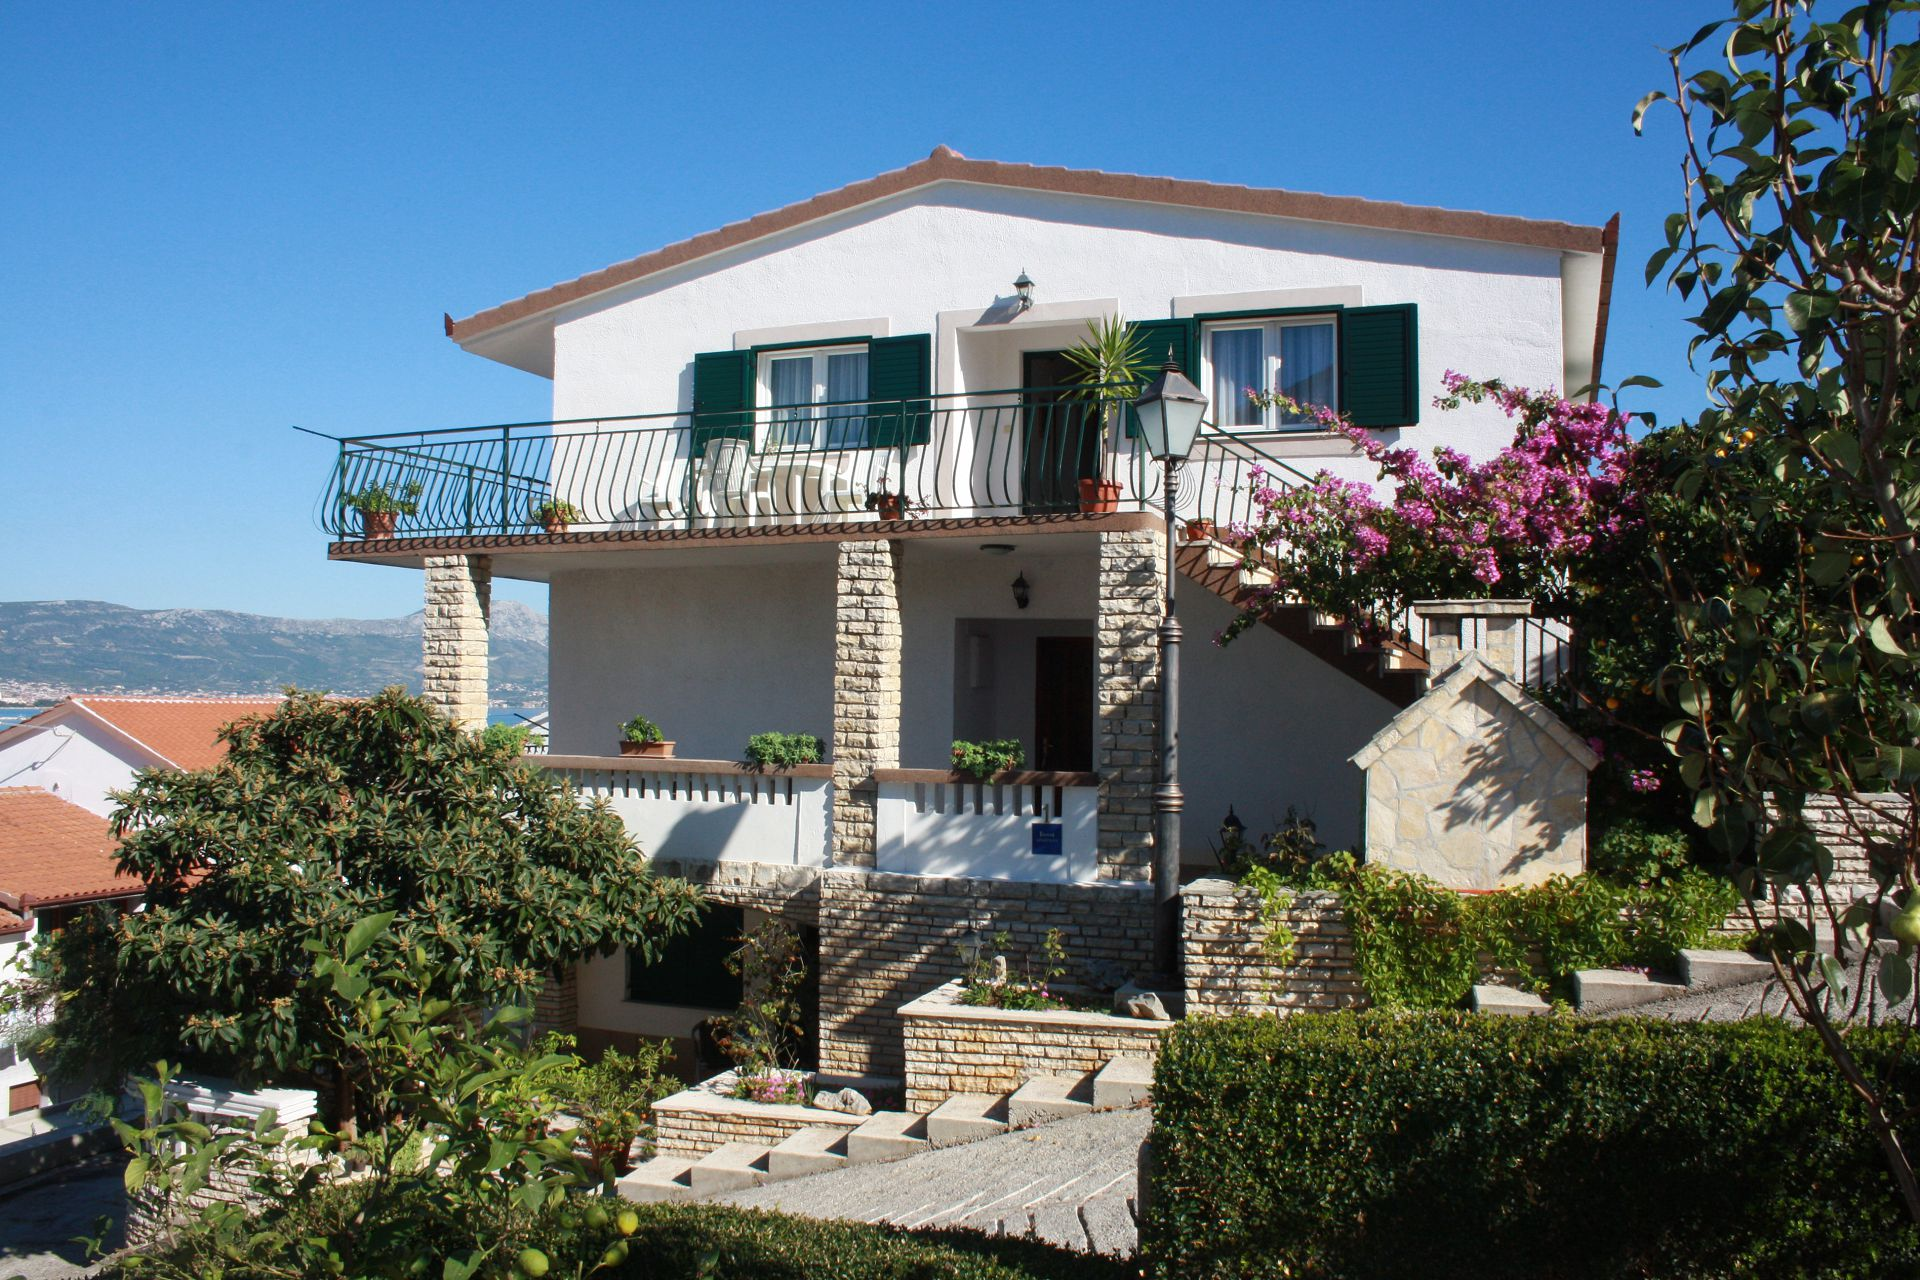 00302ARBA - Mastrinka - Apartments Croatia